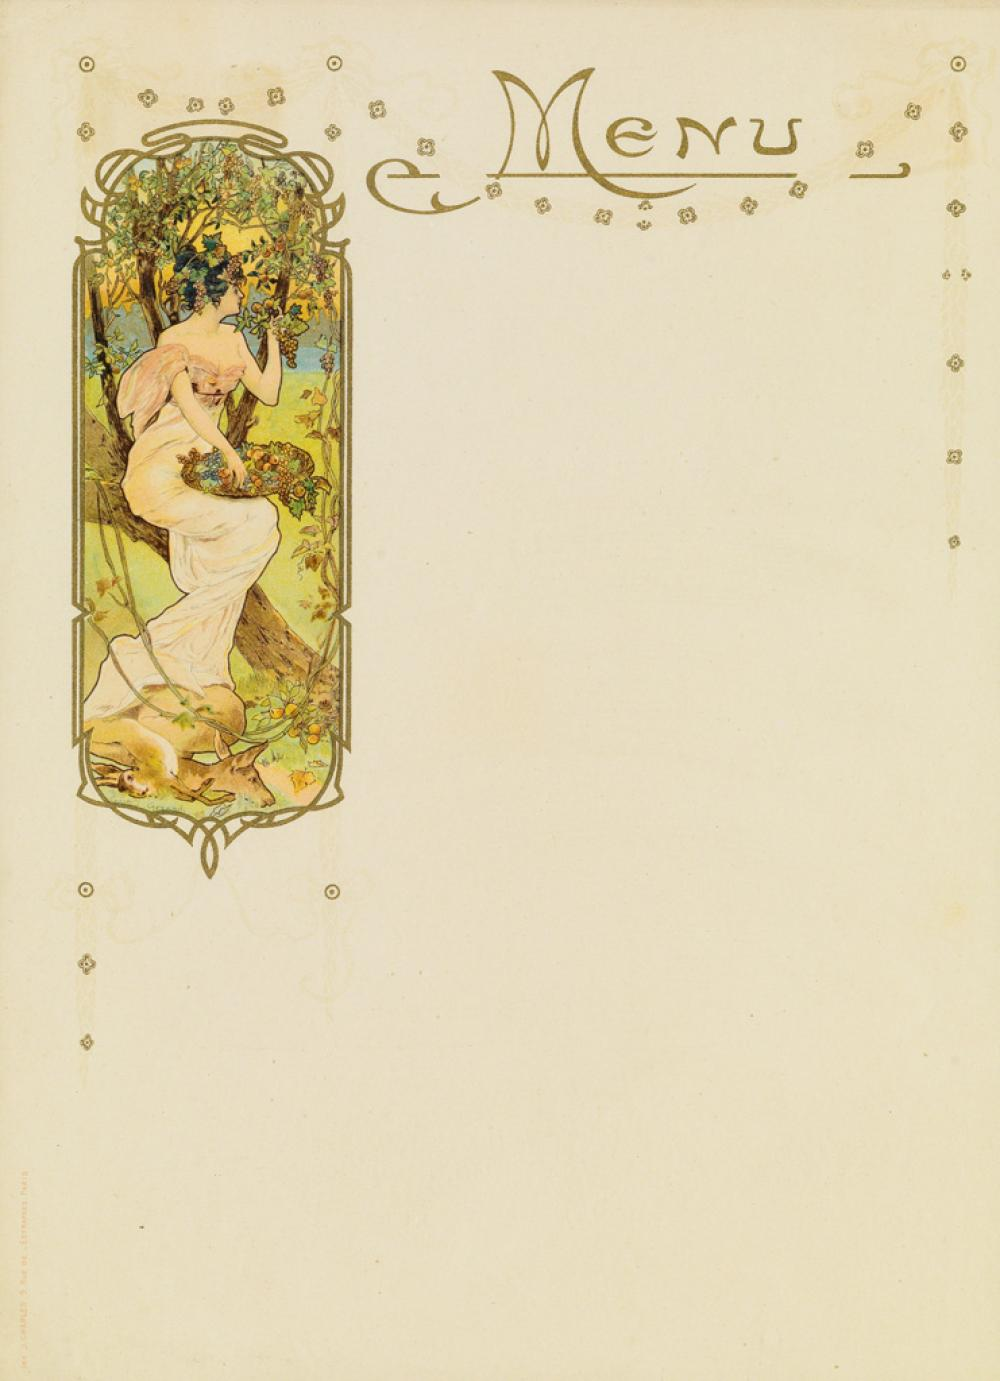 GASTON GÉRARD (1878-1969). [ART NOUVEAU.] Two menu cards. Circa 1890s. Each 11x8 inches, 29x21 cm. J. Charles, Paris.